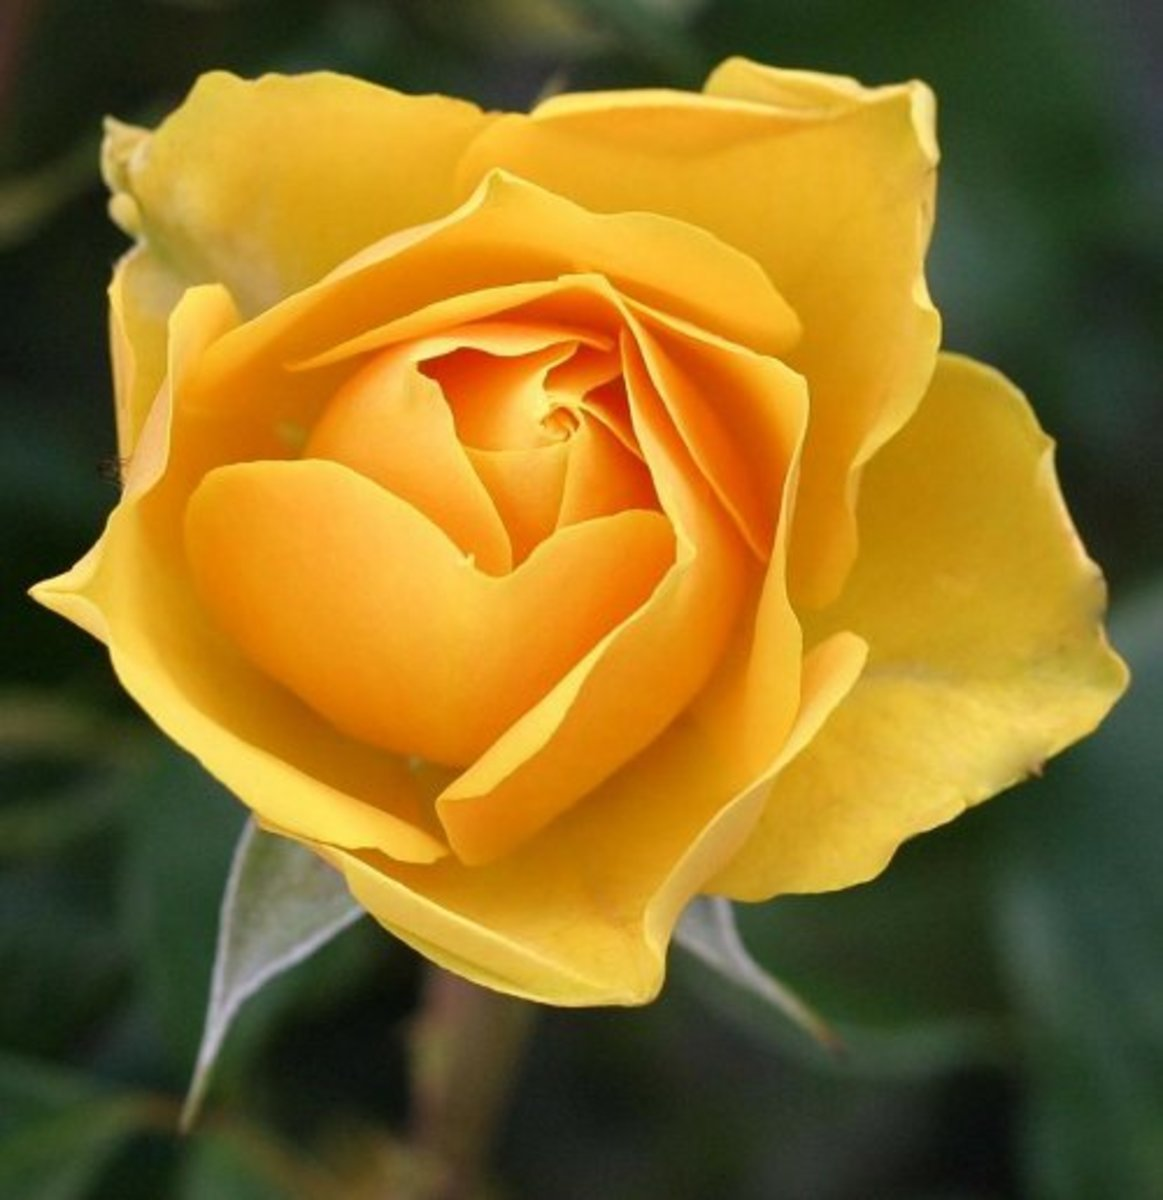 Single golden yellow-orange rose flower.